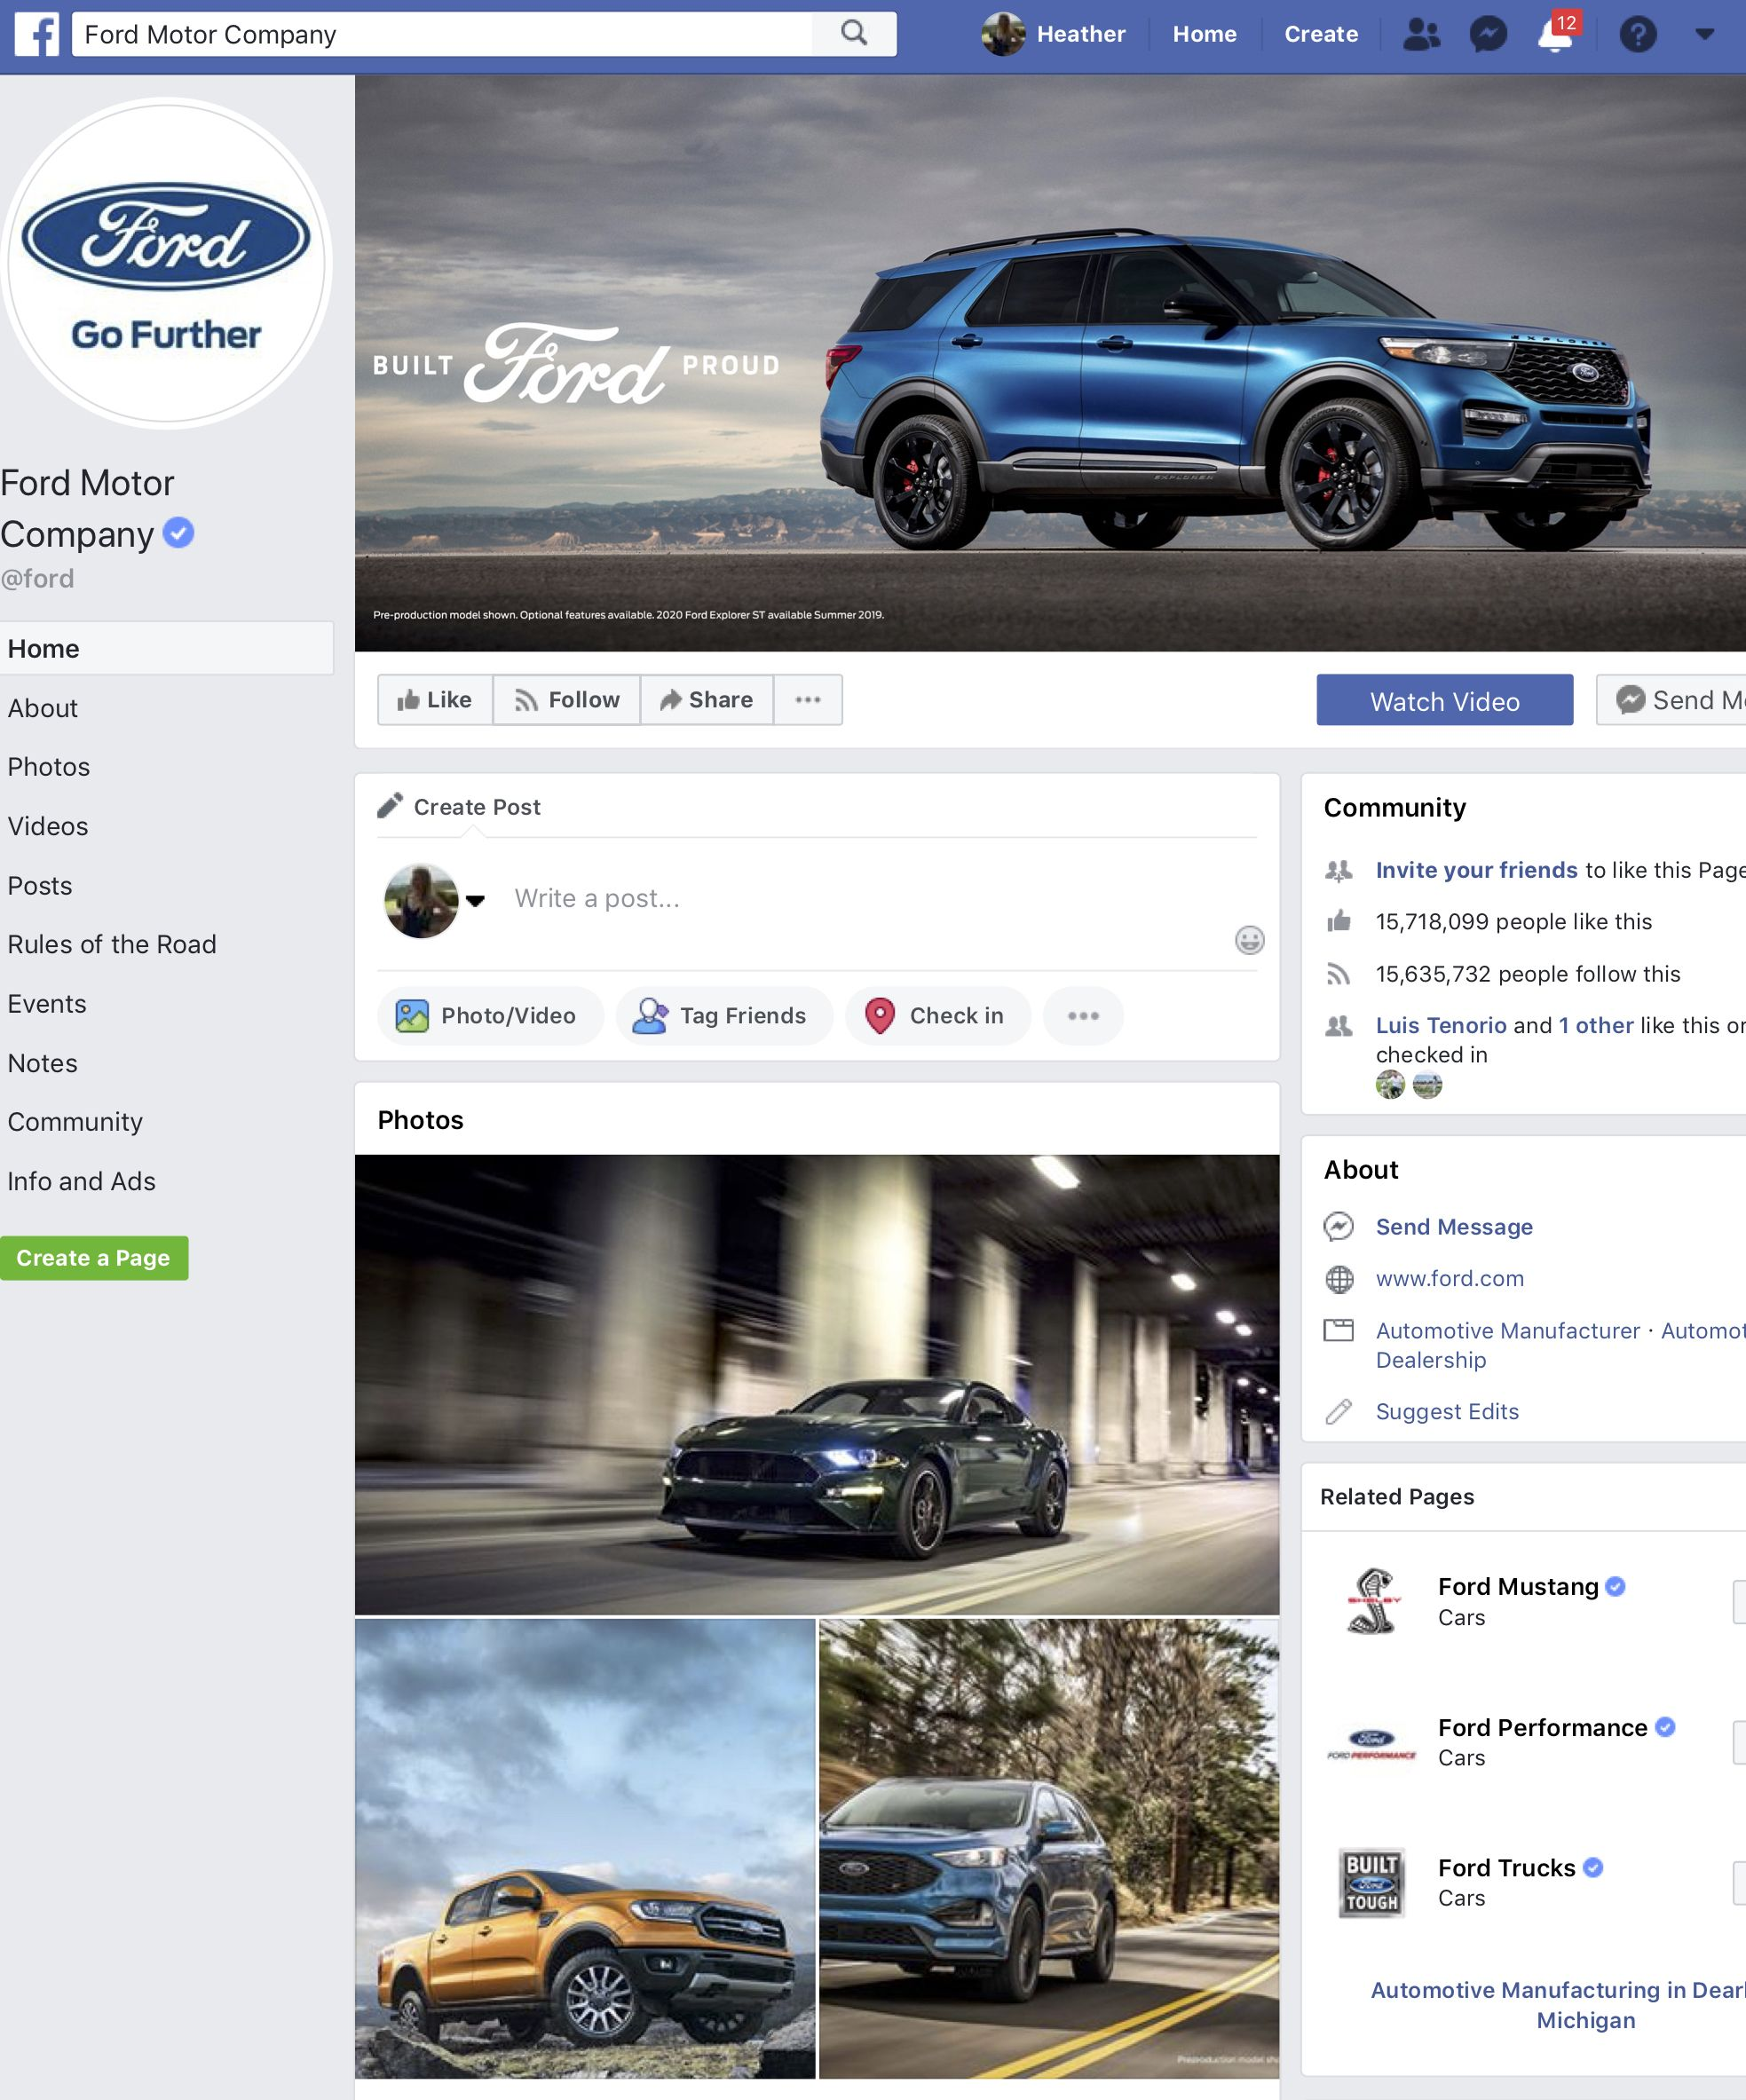 Customer Journey Stage 2 Engagement After Seeing The Ford Truck